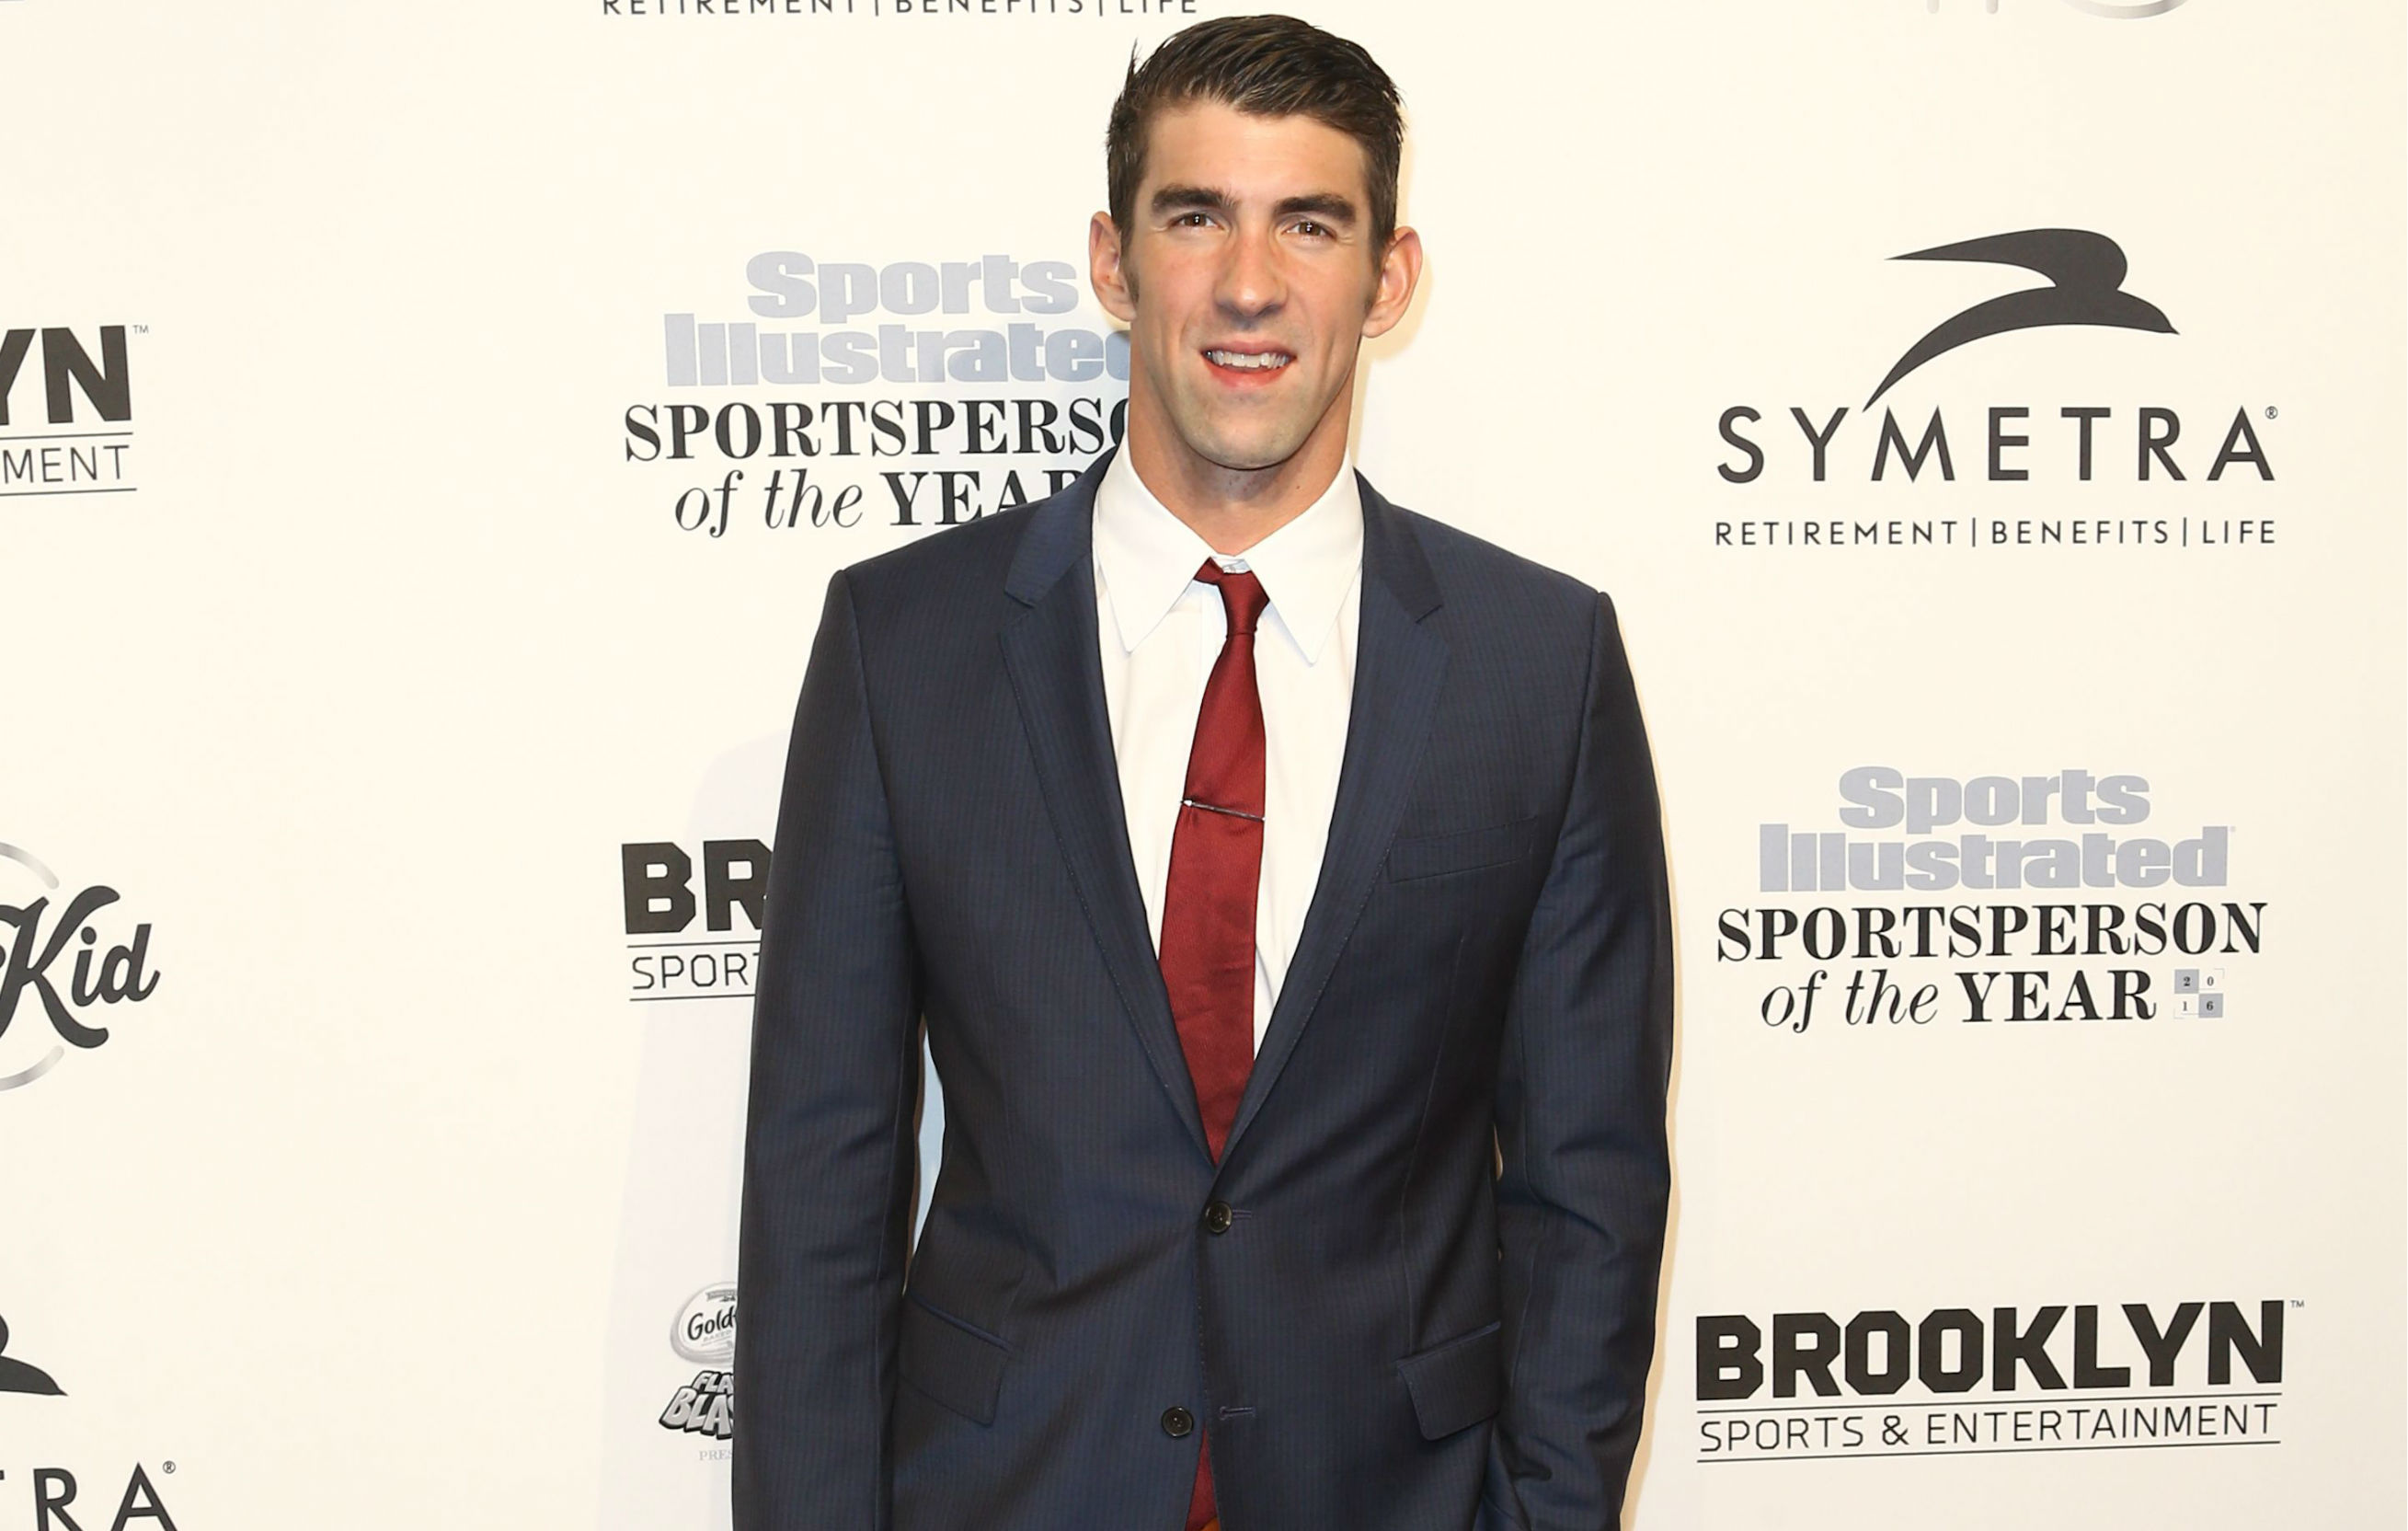 Michael Phelps, BBC Sports Personality of the Year